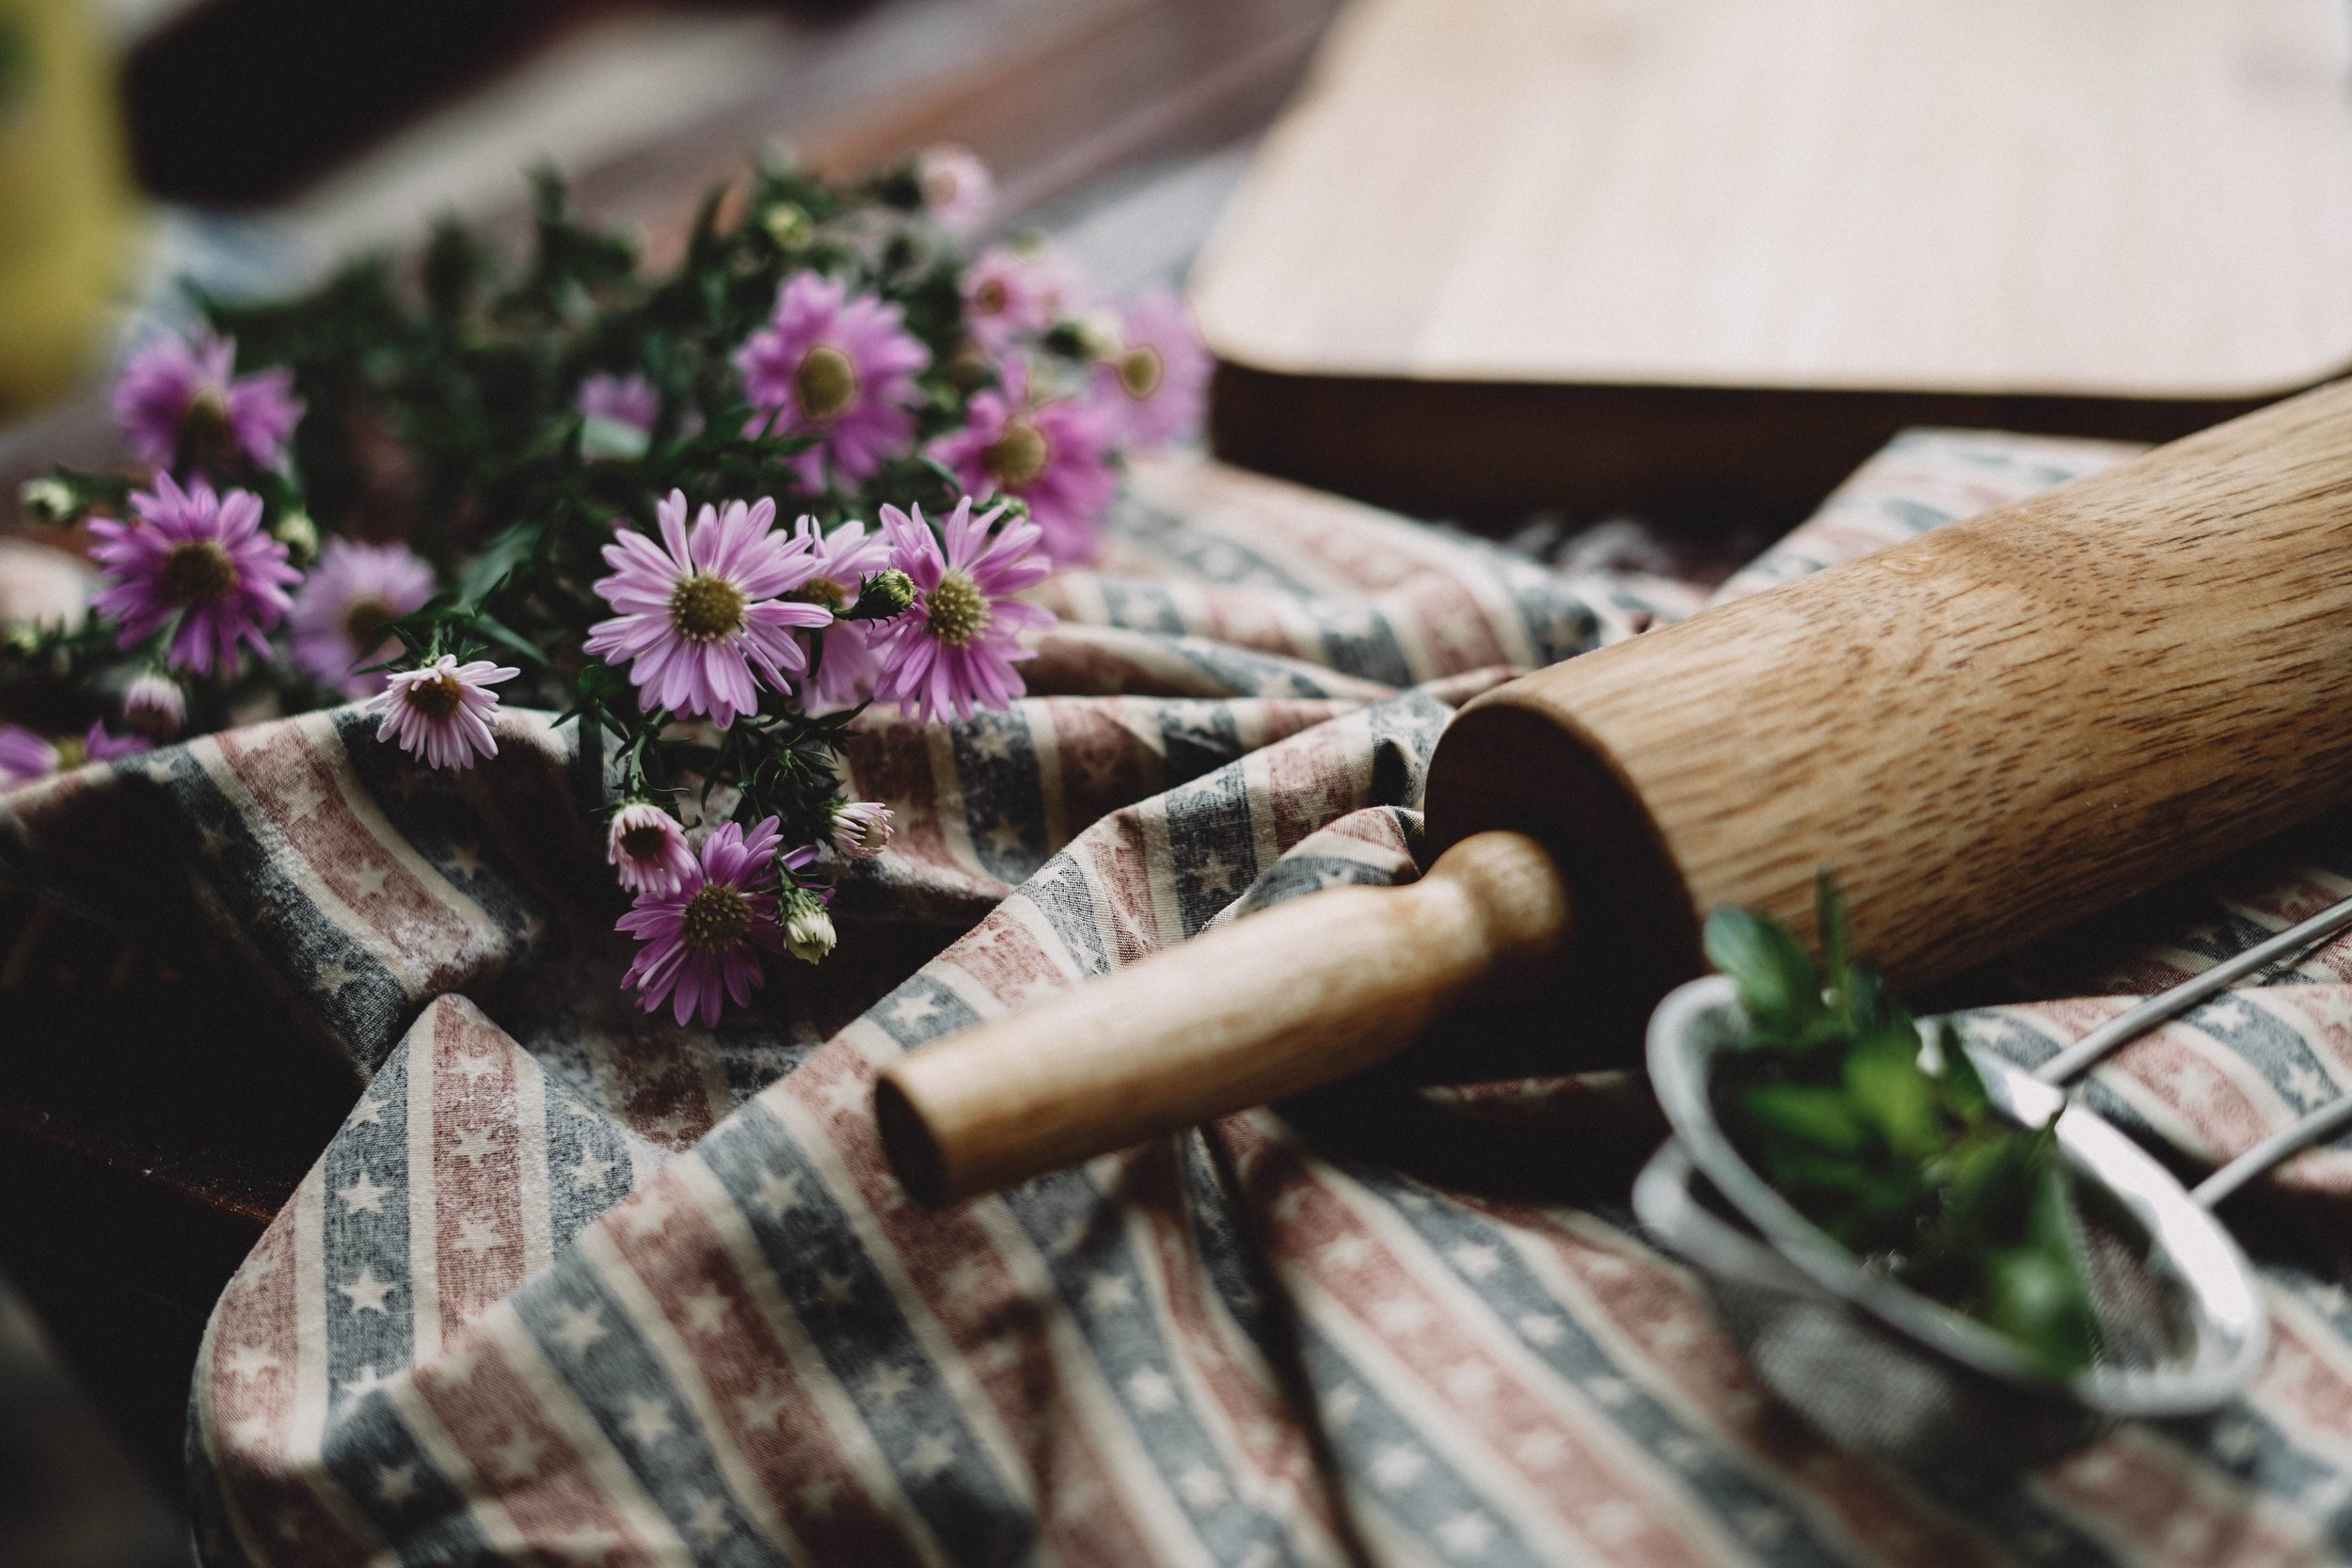 How To Design An Herbal Toolkit For Your Craft // Witchcraft // Magic // The Traveling Witch